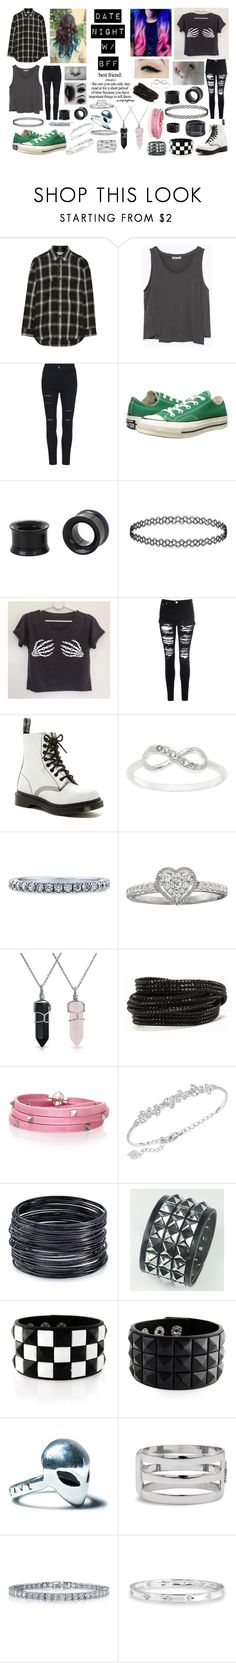 """Date N W/ Bff"" by lillybearrawrr ❤ liked on Polyvore featuring Yves Saint Laurent, Zara, Converse, Glamorous, Dr. Martens, Anatomy Of, City x City, BERRICLE, Bling Jewelry and Pieces"